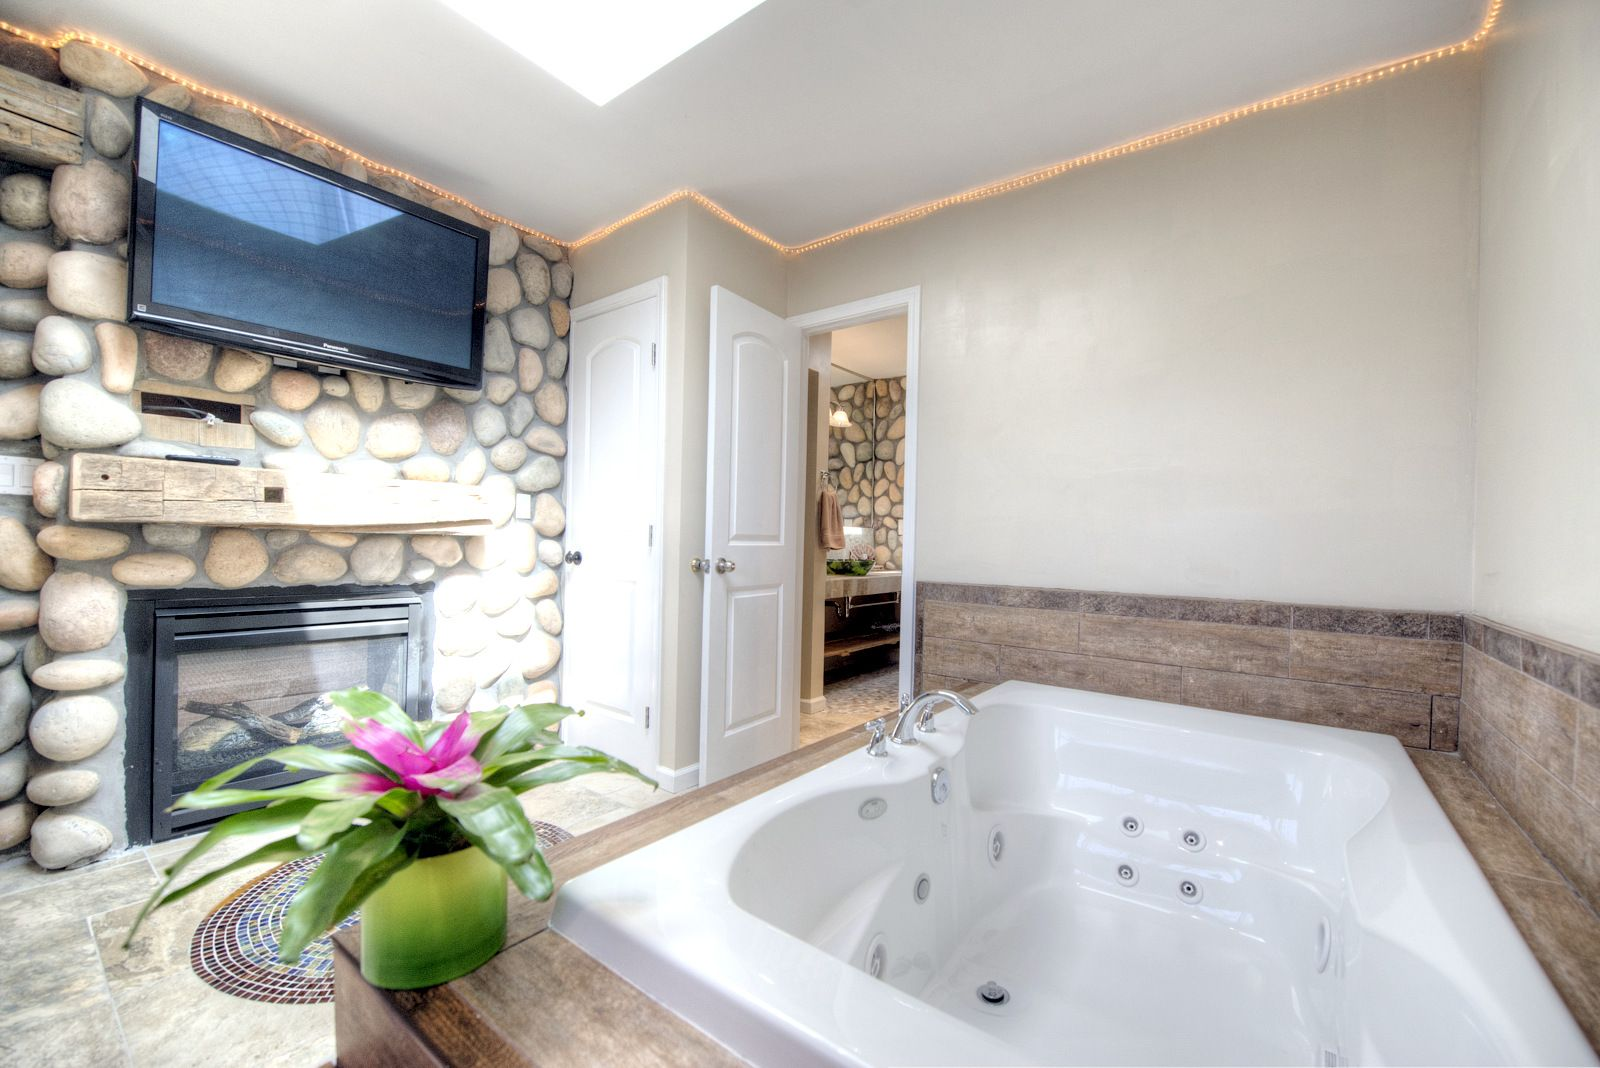 Relax In Your Jacuzzi Tub While Enjoying The Fireplace And